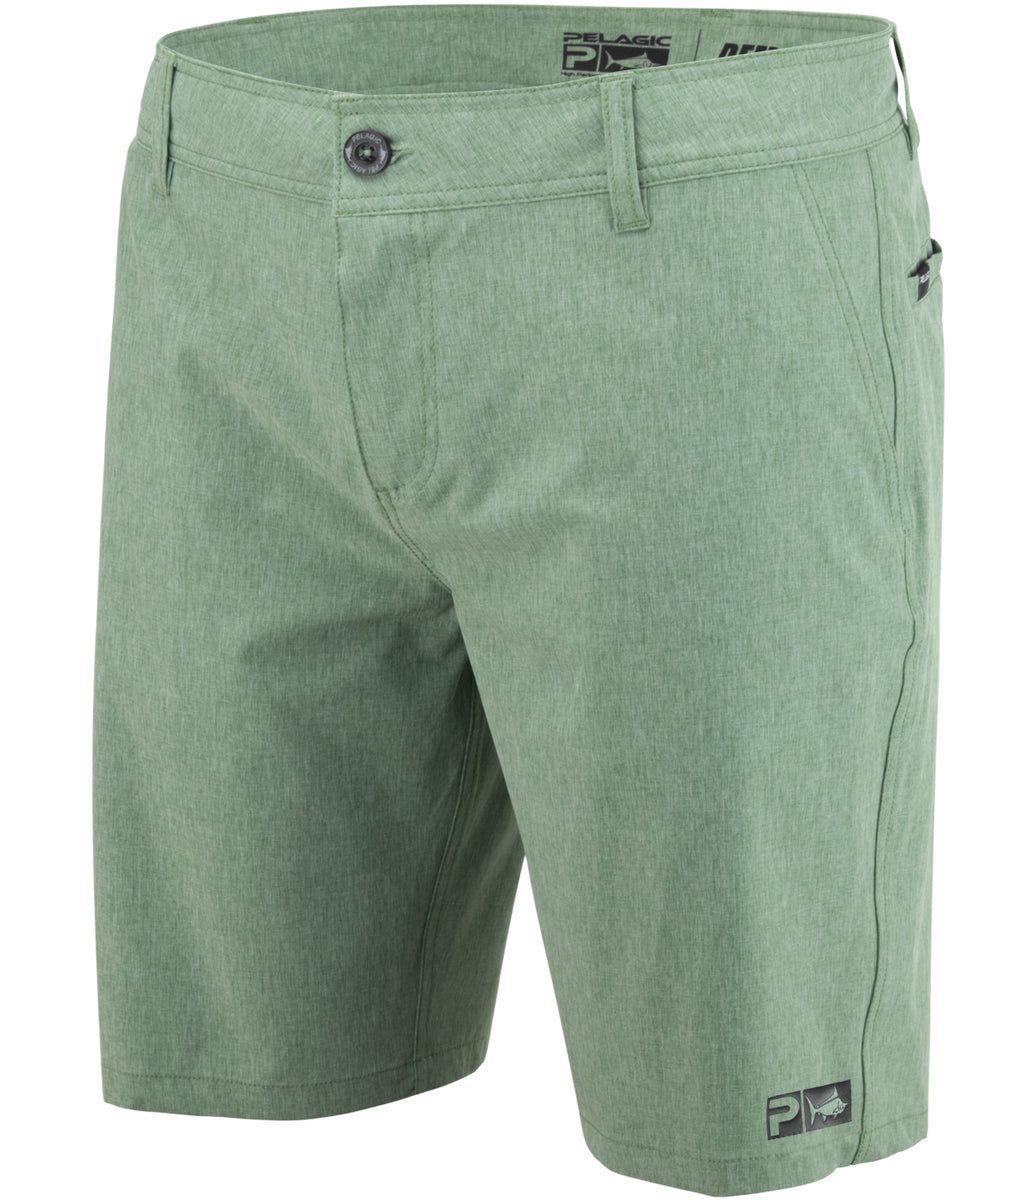 Deep Sea Hybrid Fishing Shorts - Youth Big Image - 3